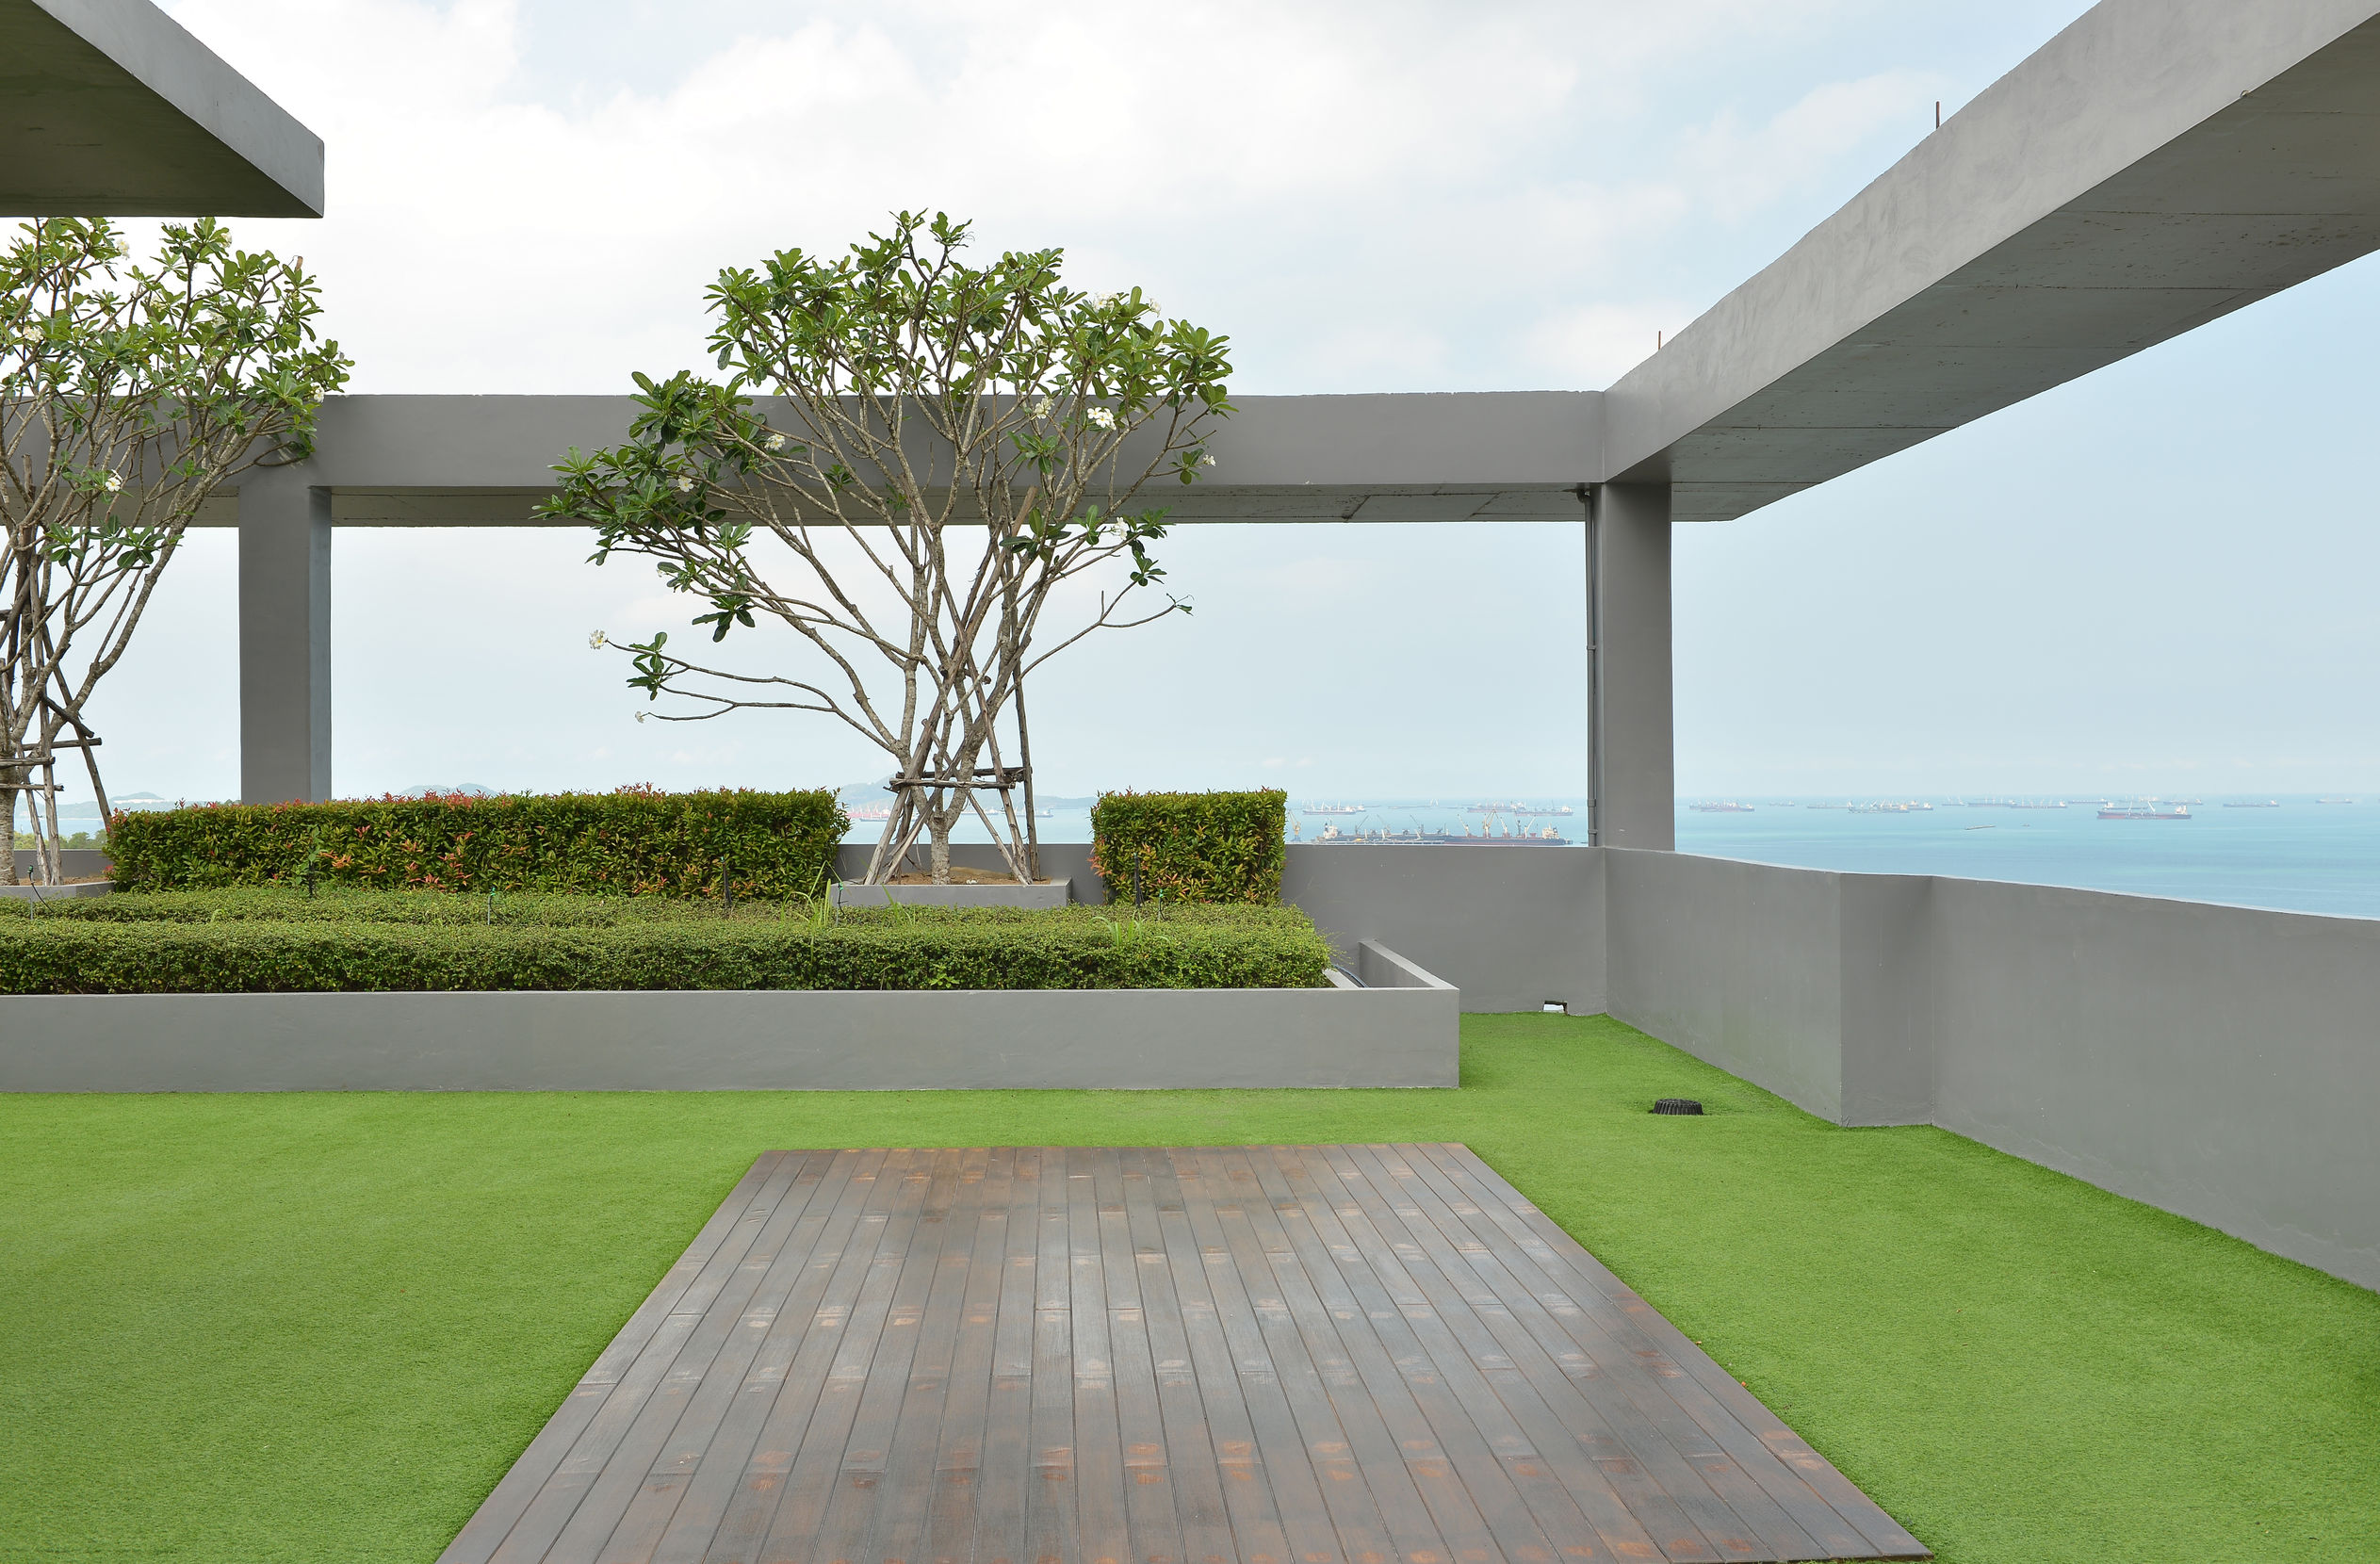 Artificial grass, synthetic turf installation on a rooftop, rooftop garden, trees, ocean